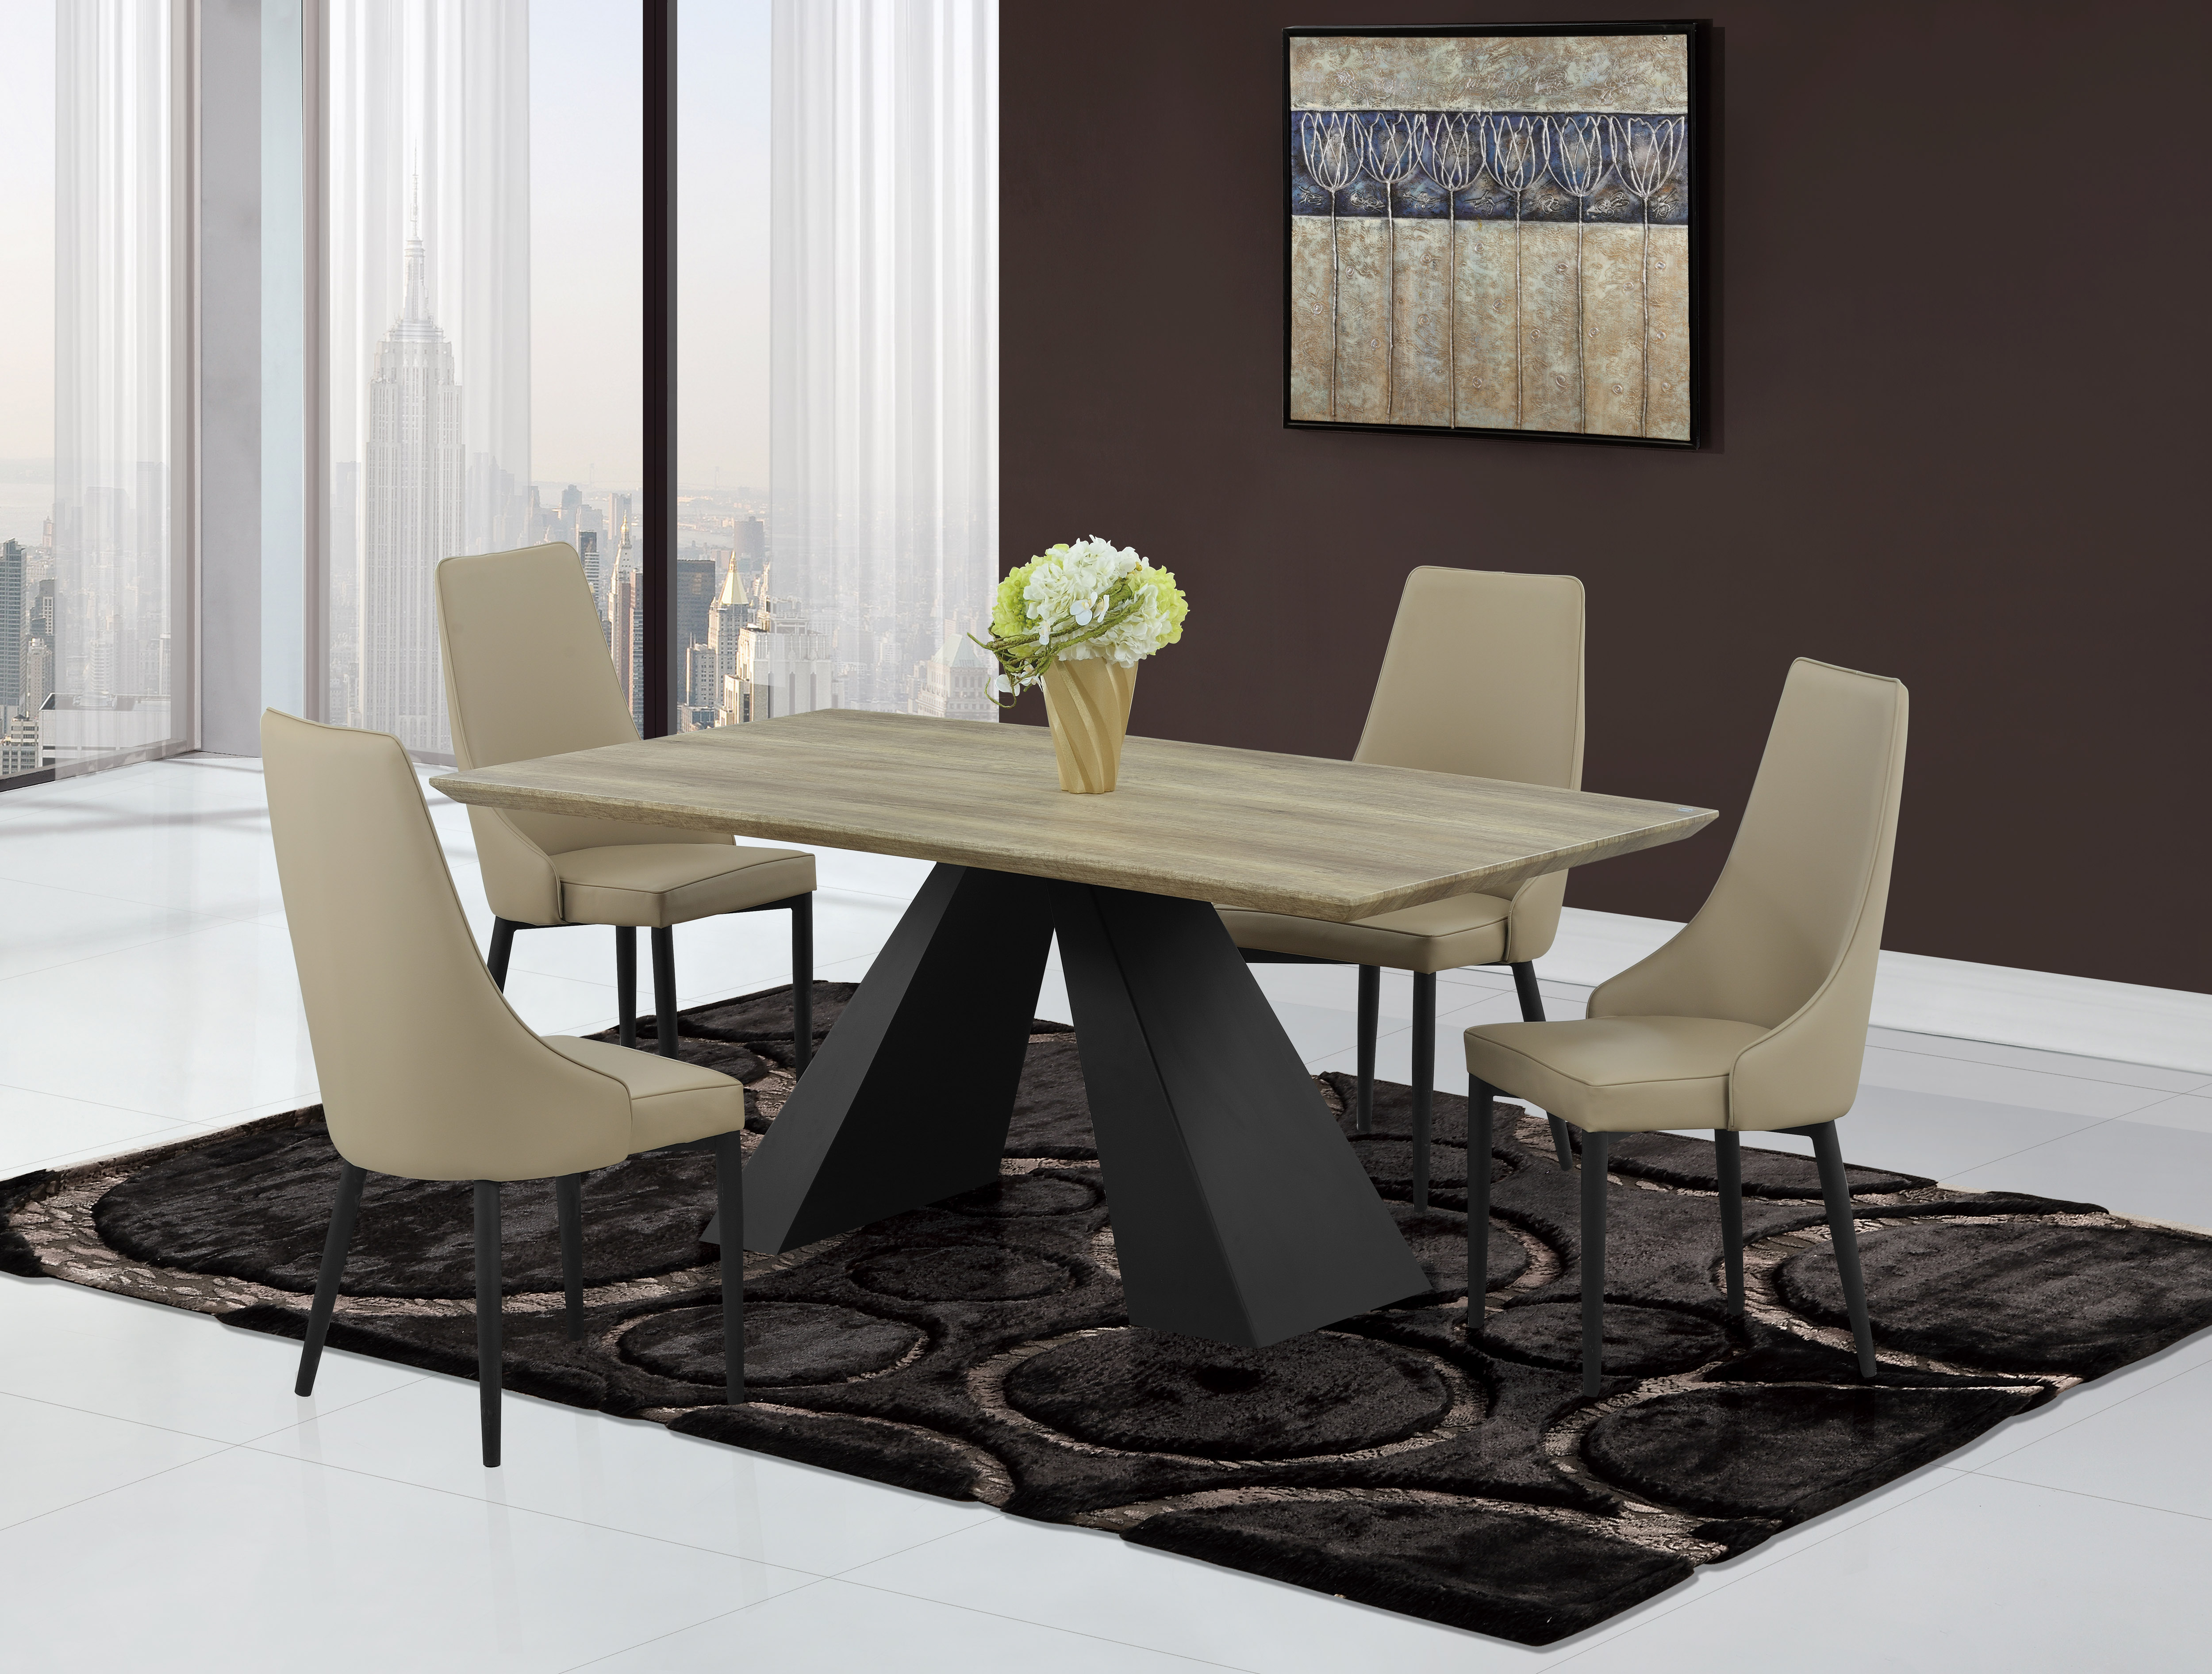 Modern Khaki Dining Table With Black Base And Khaki Chairs